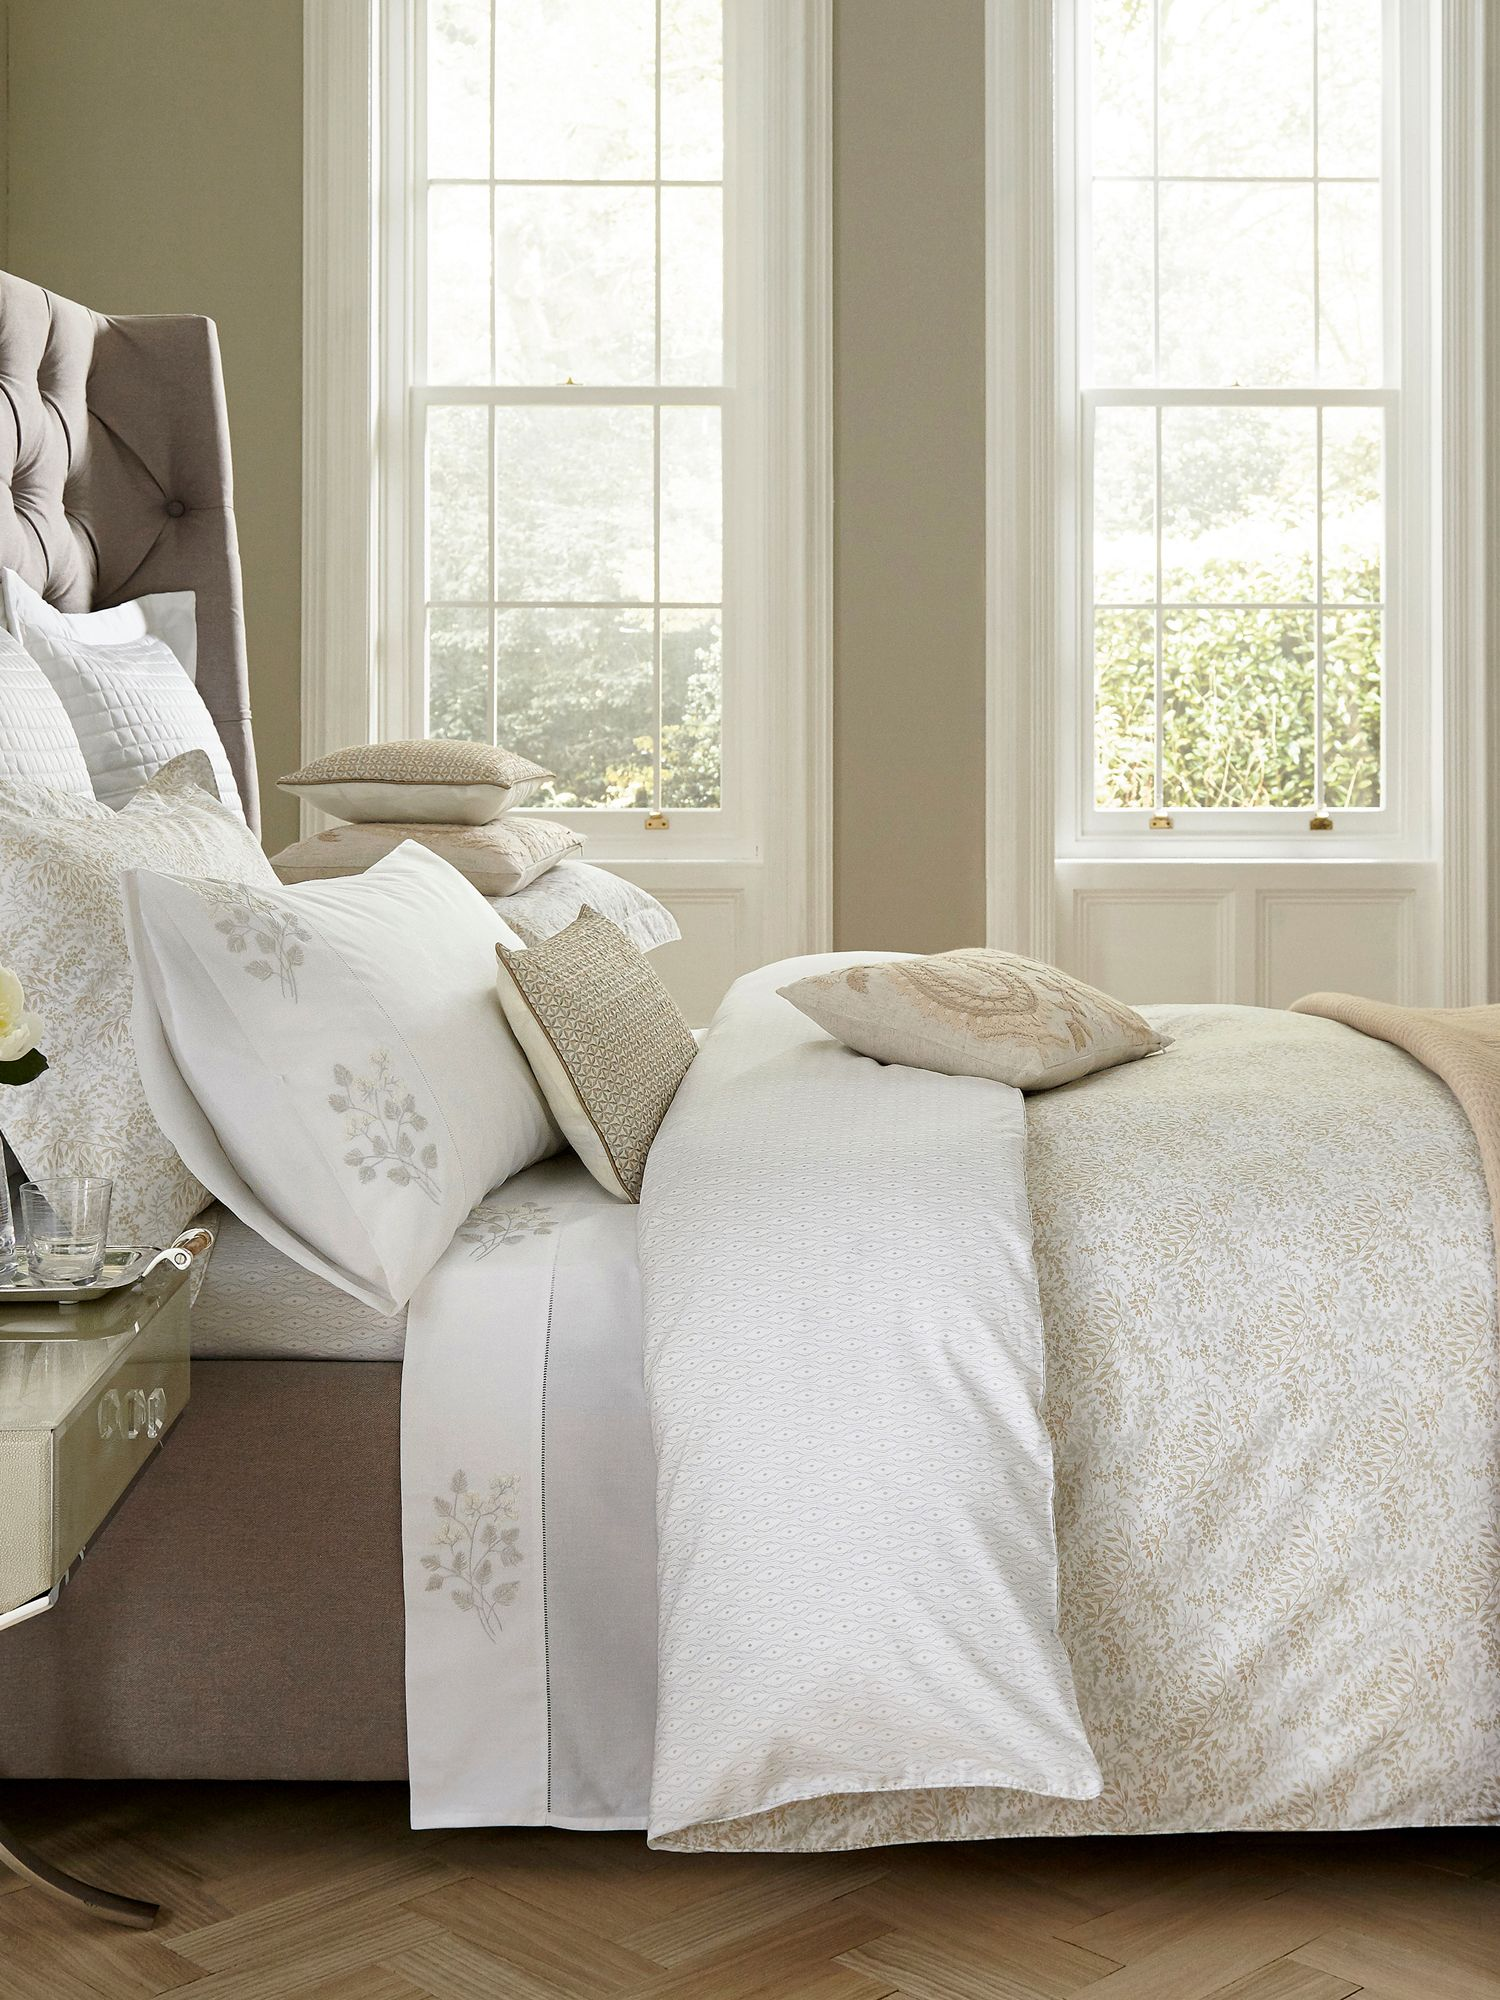 Image of Fable Amirah duvet cover